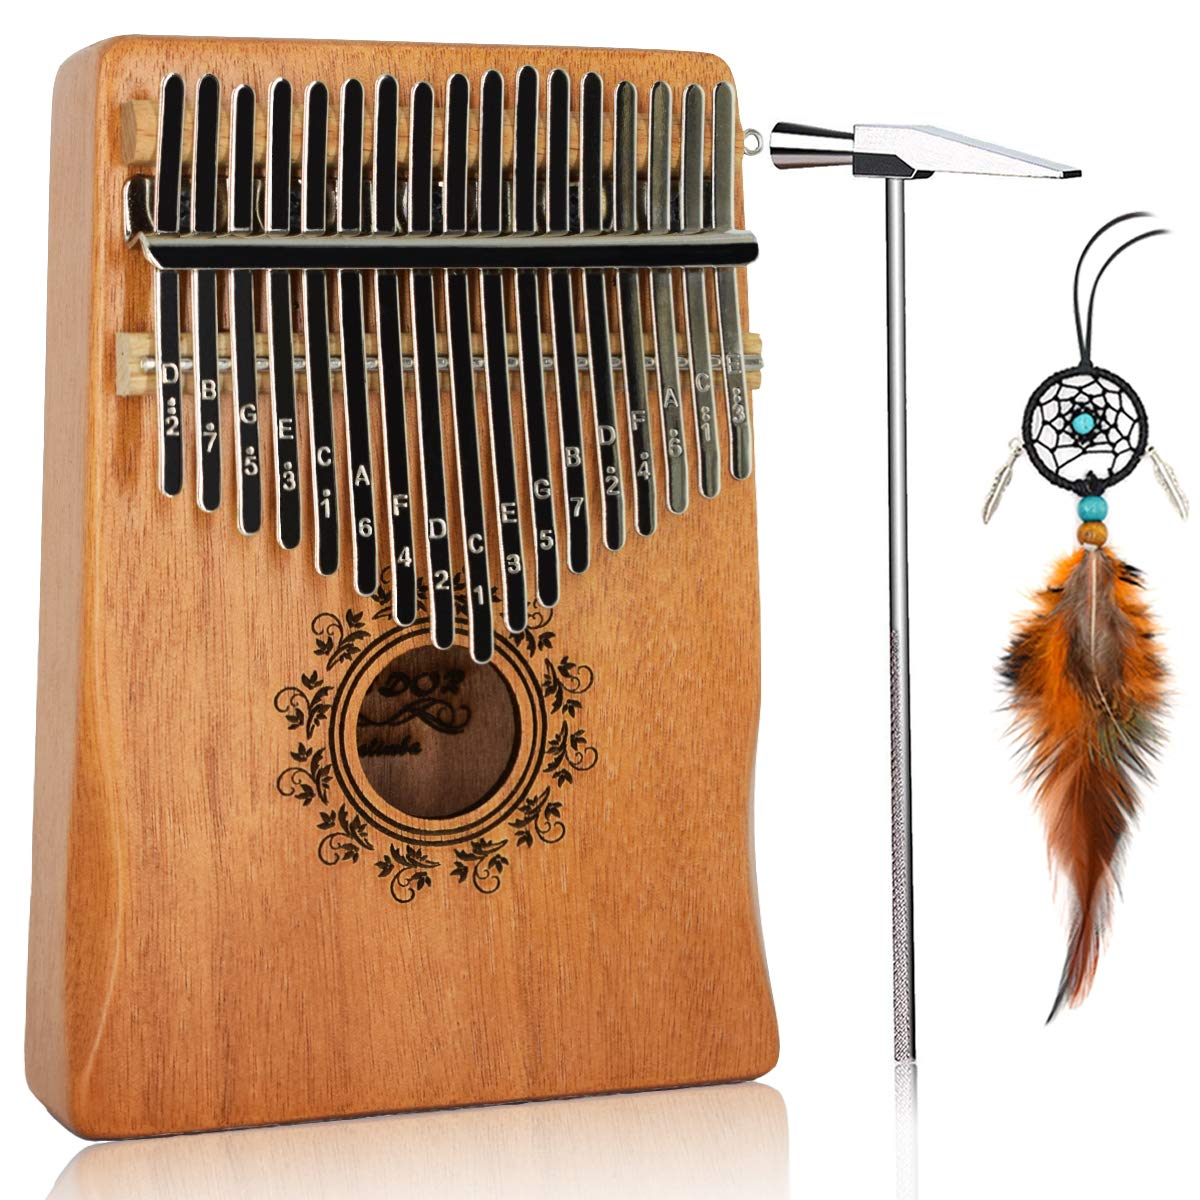 17 Key Kalimba Thumb Piano, Bindor Finger Piano Mbira Kalimba Solid Mahogany Body Portable Easy-to-learn Musical Instrument with Tuning Hammer(Wood Color) by BinDor (Image #1)